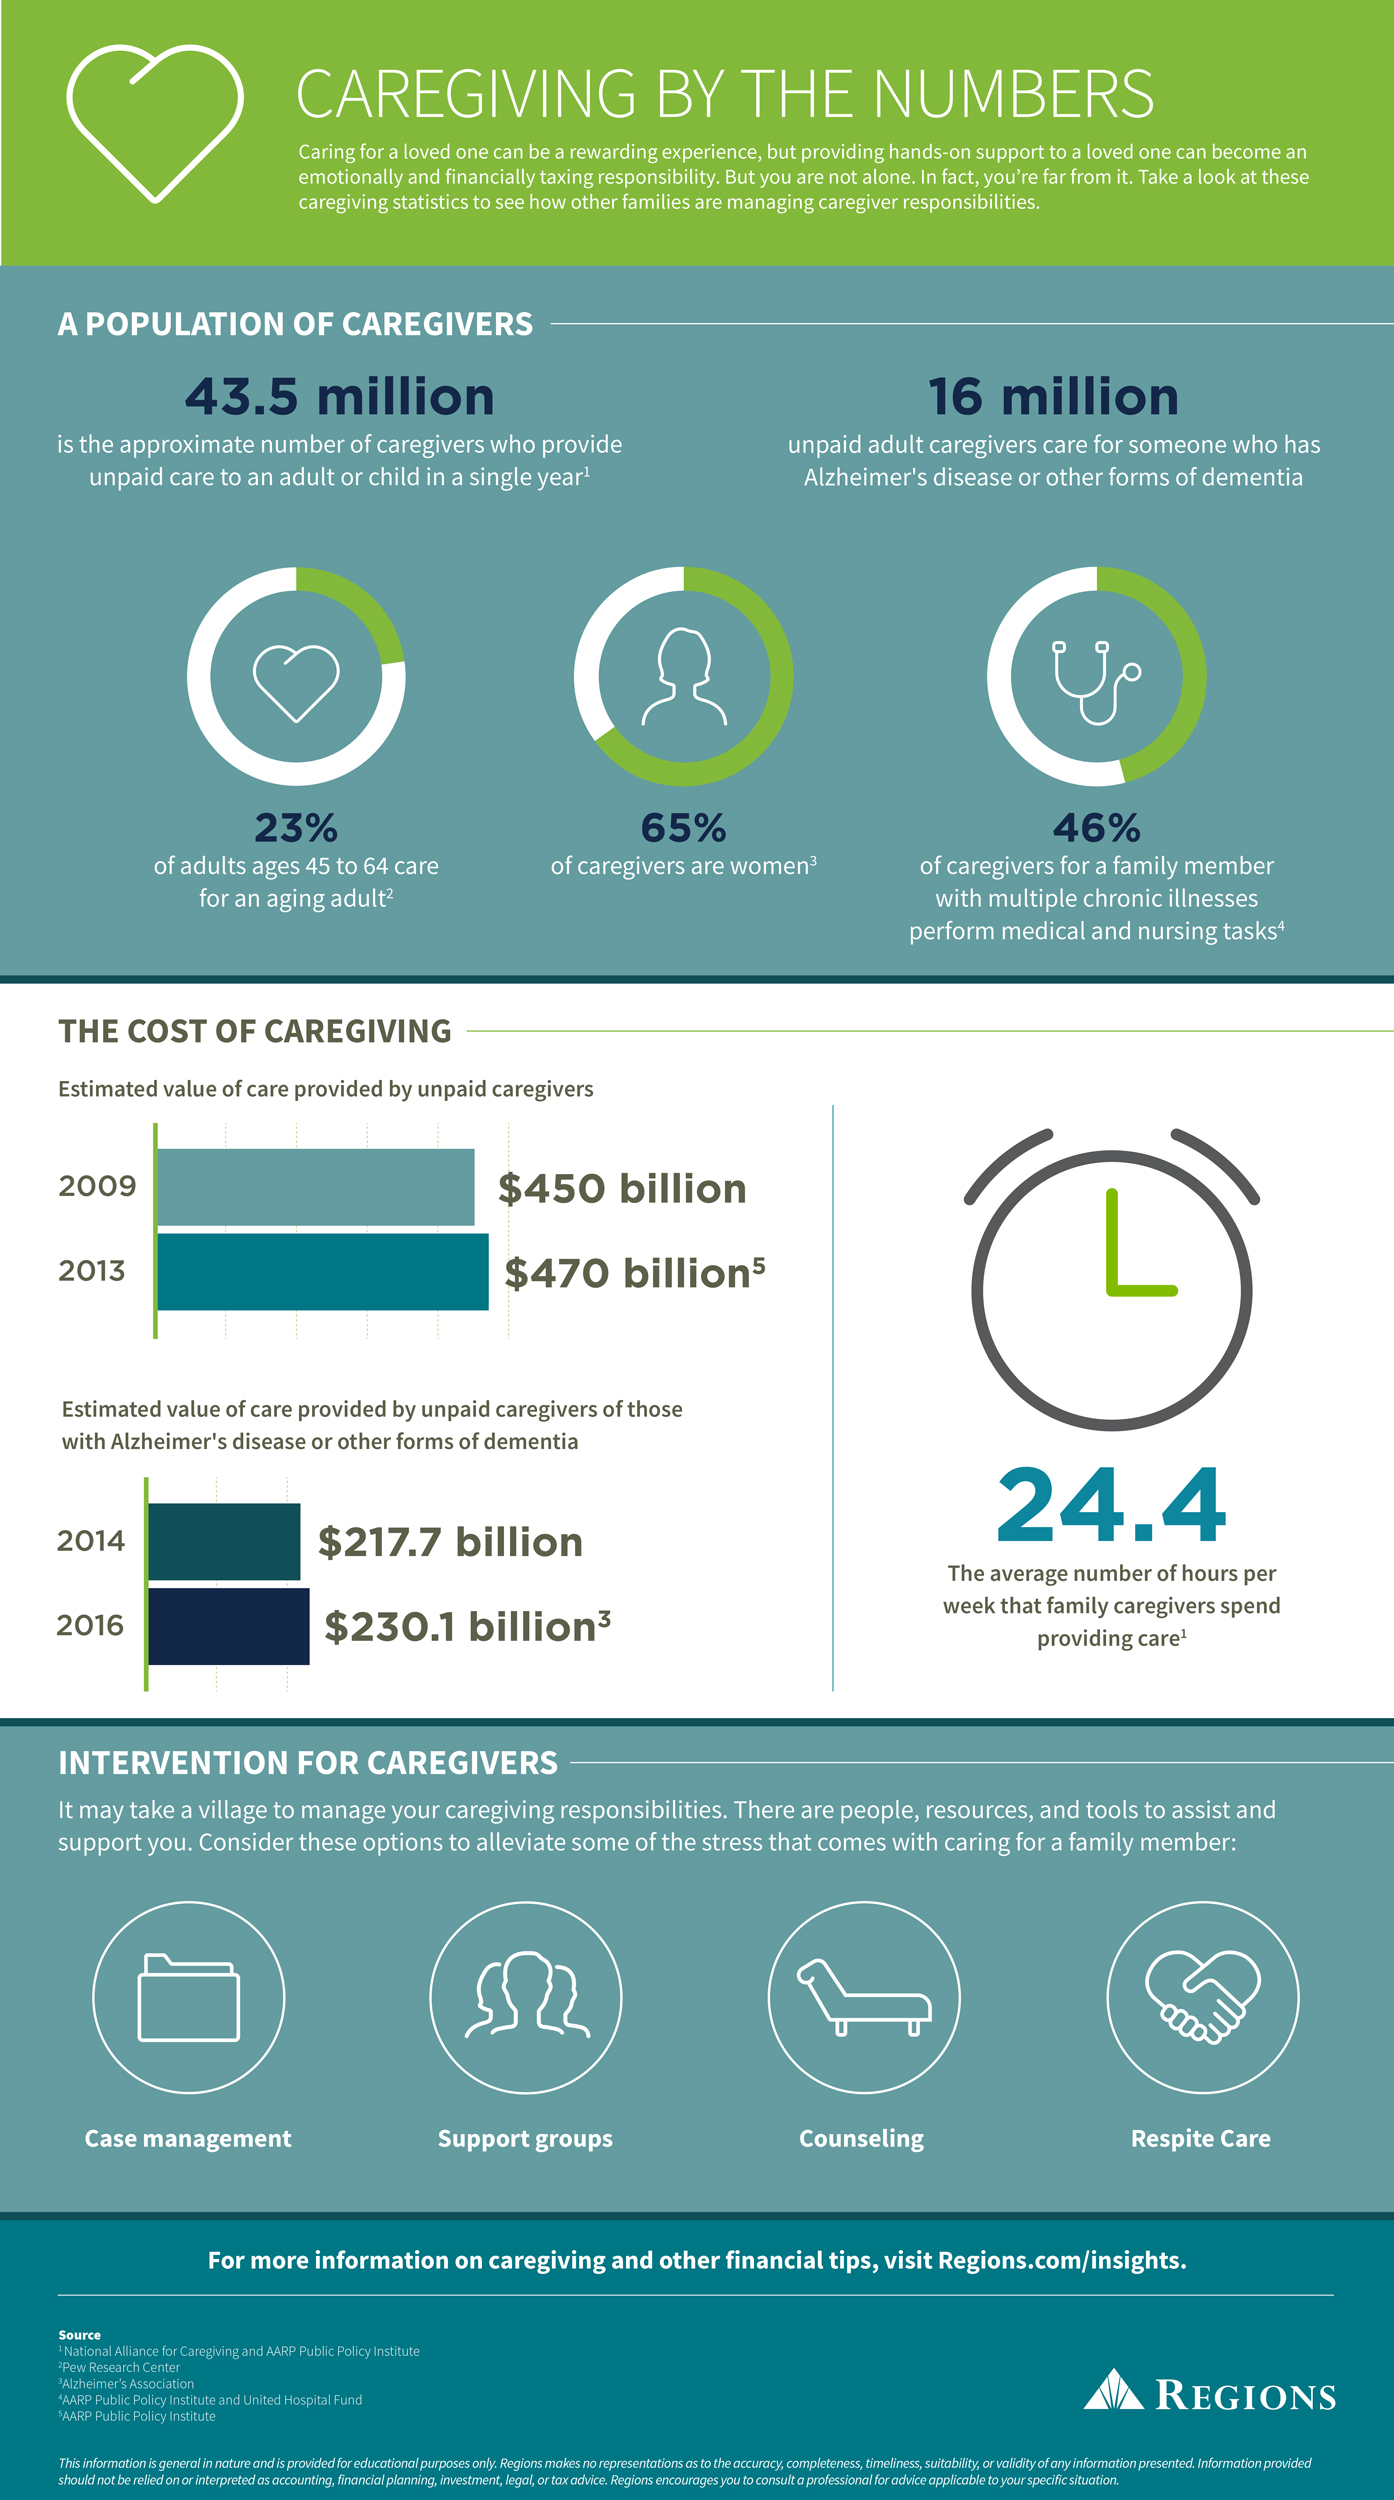 Caregiving by the numbers infographic